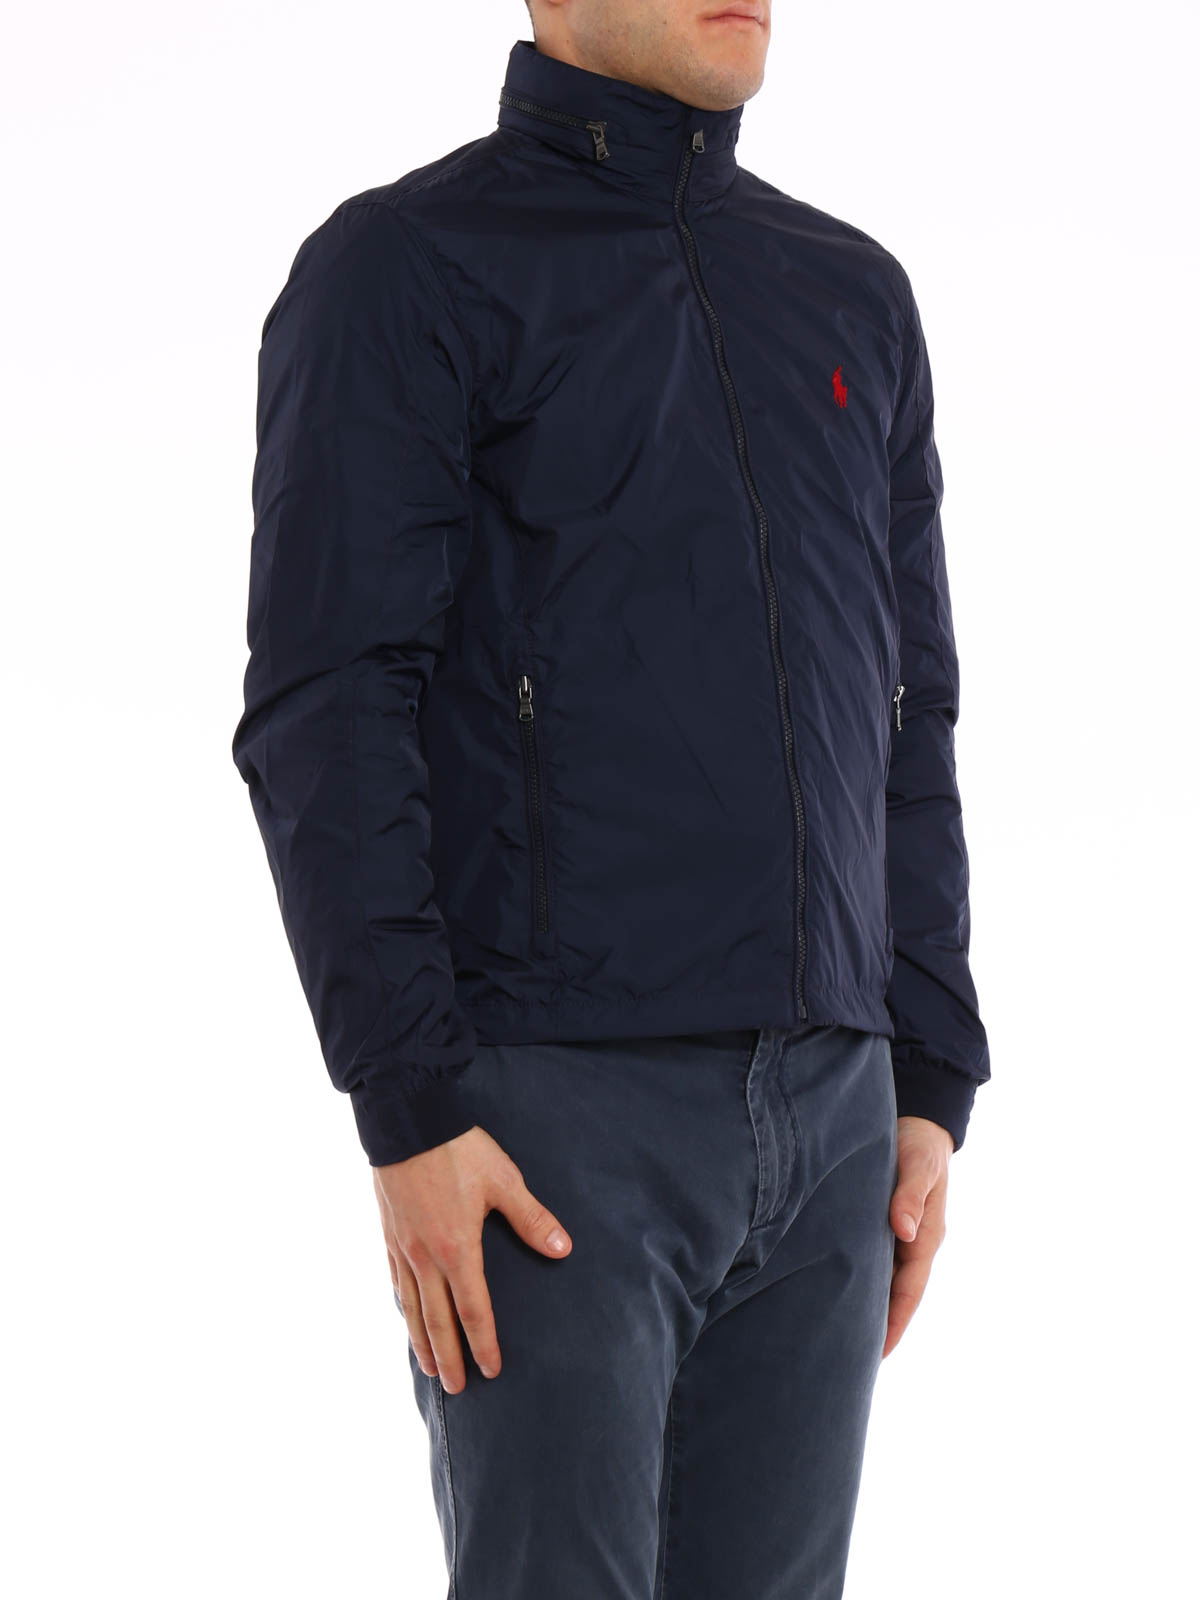 Waterproof jacket by Polo Ralph Lauren - casual jackets | iKRIX